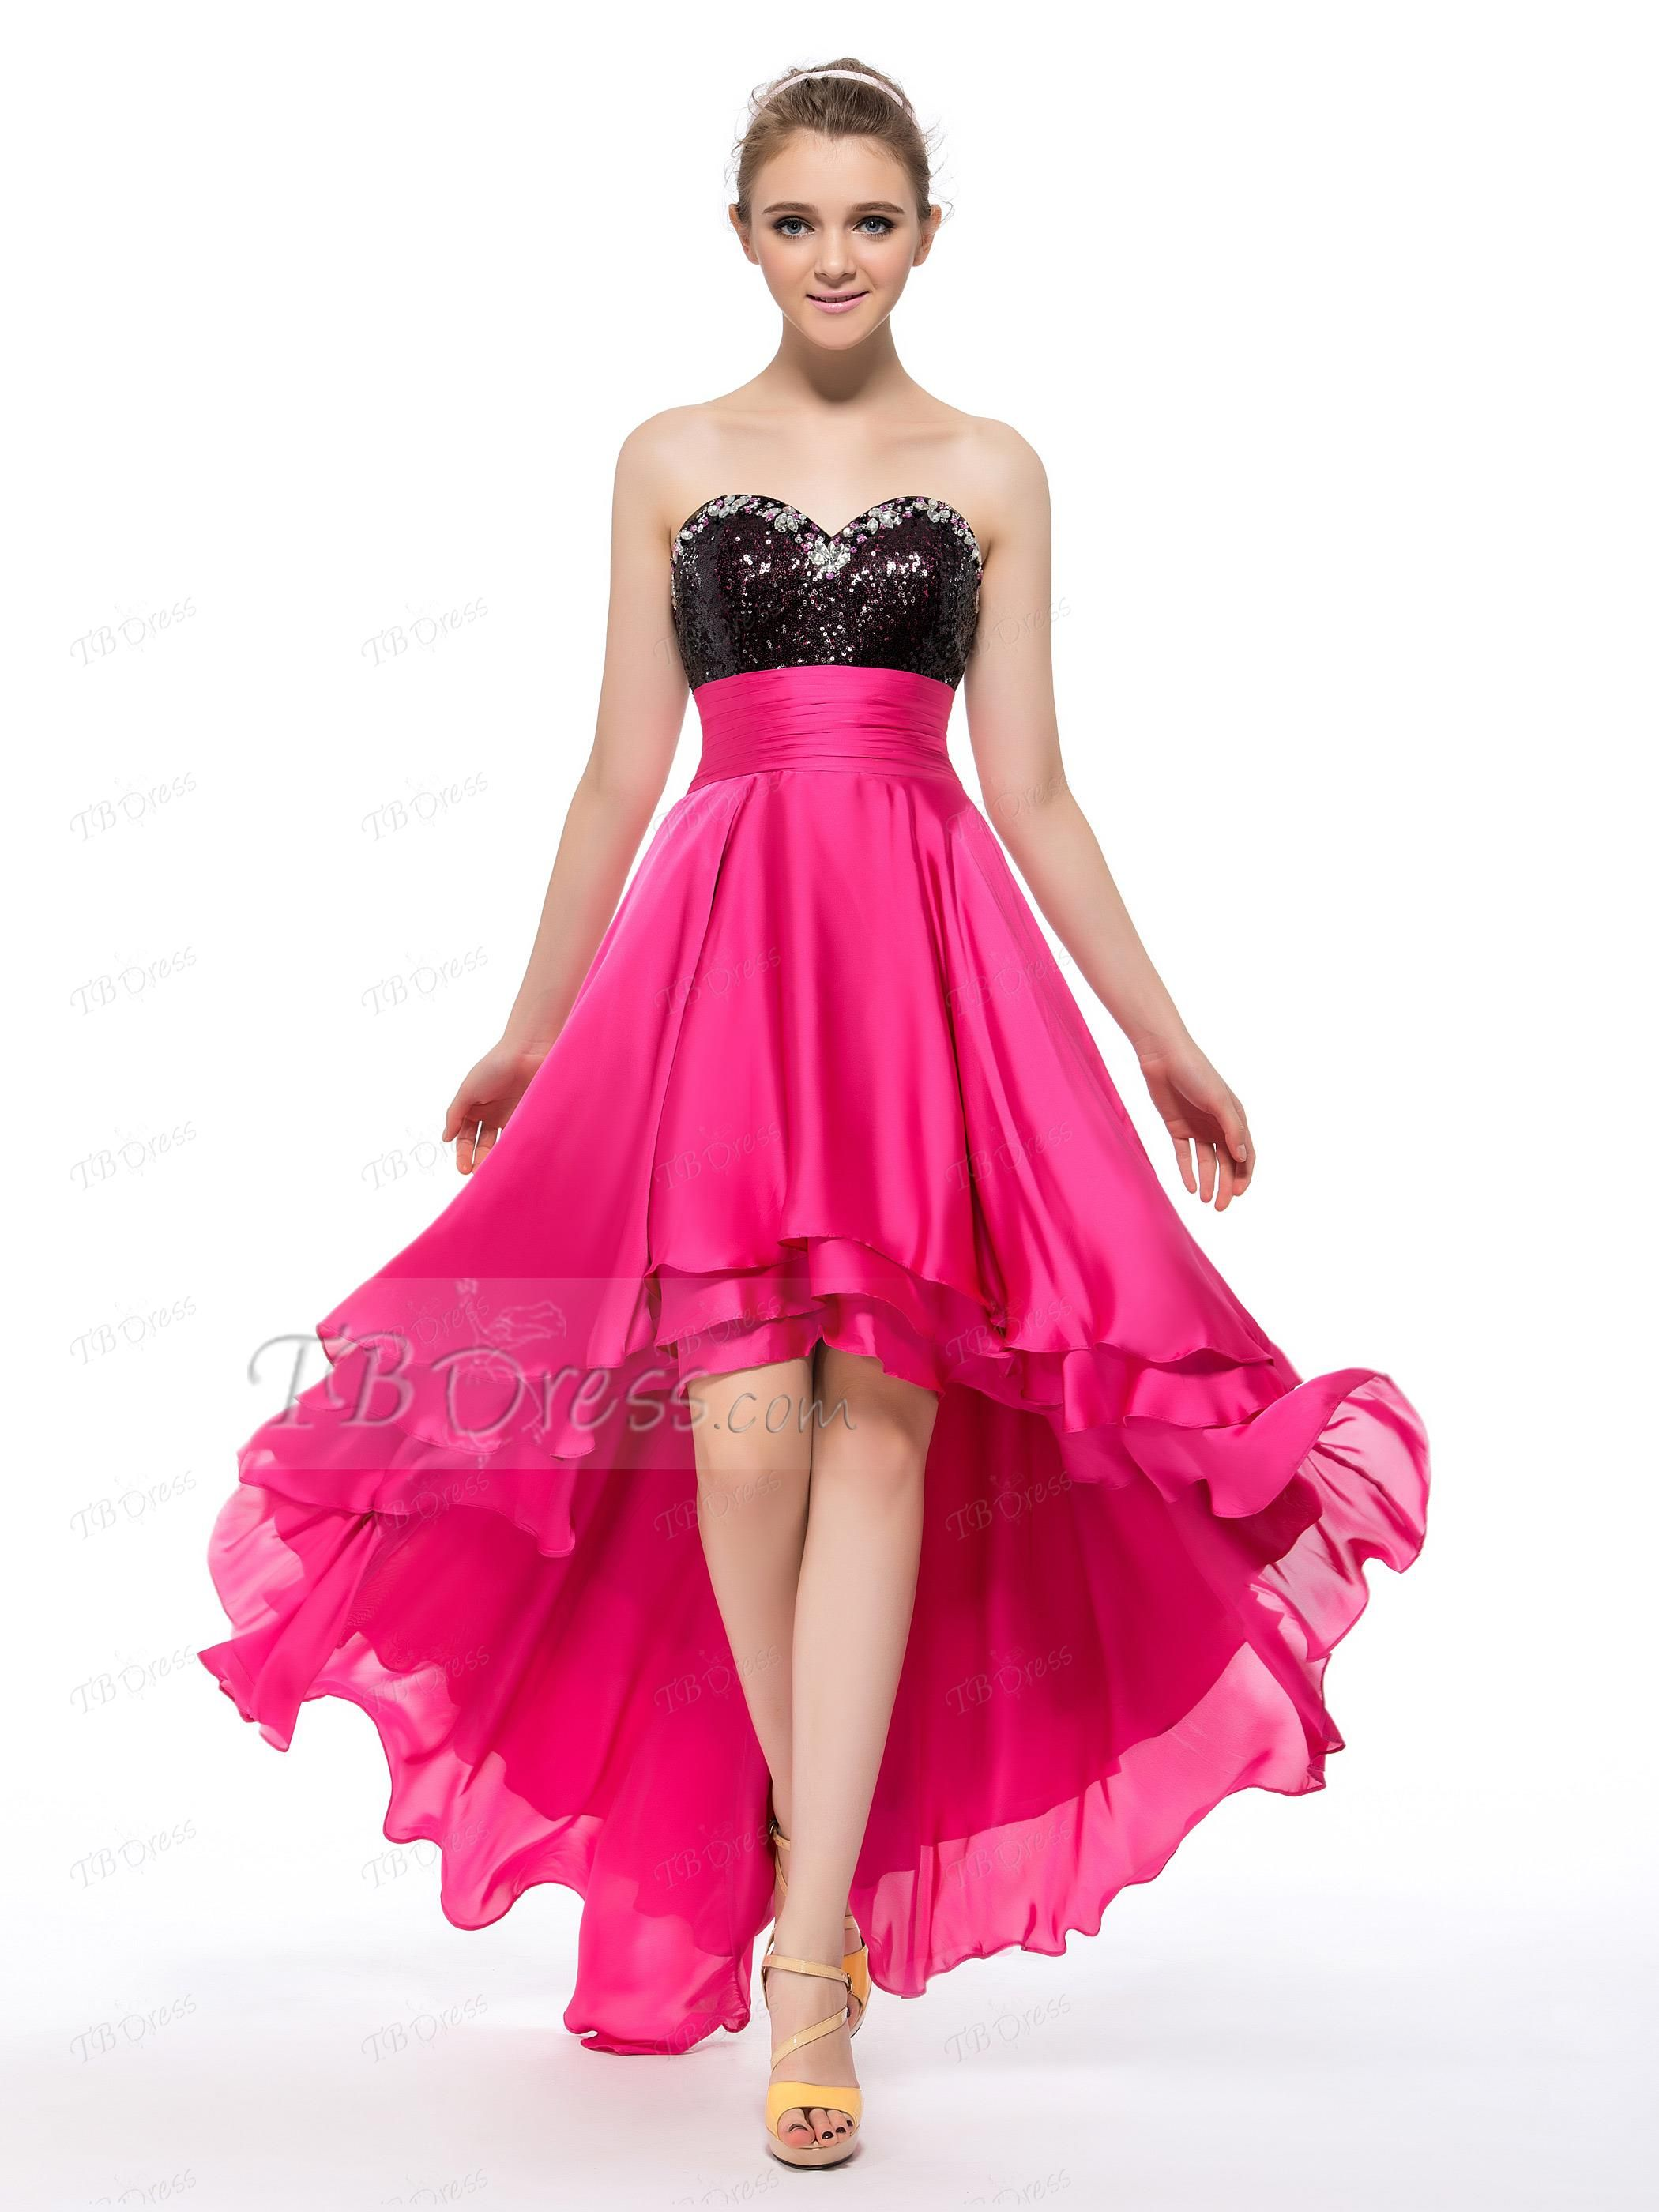 Sweetheart High-Low Length Sequins Prom/Homecoming Dress | Prom ...